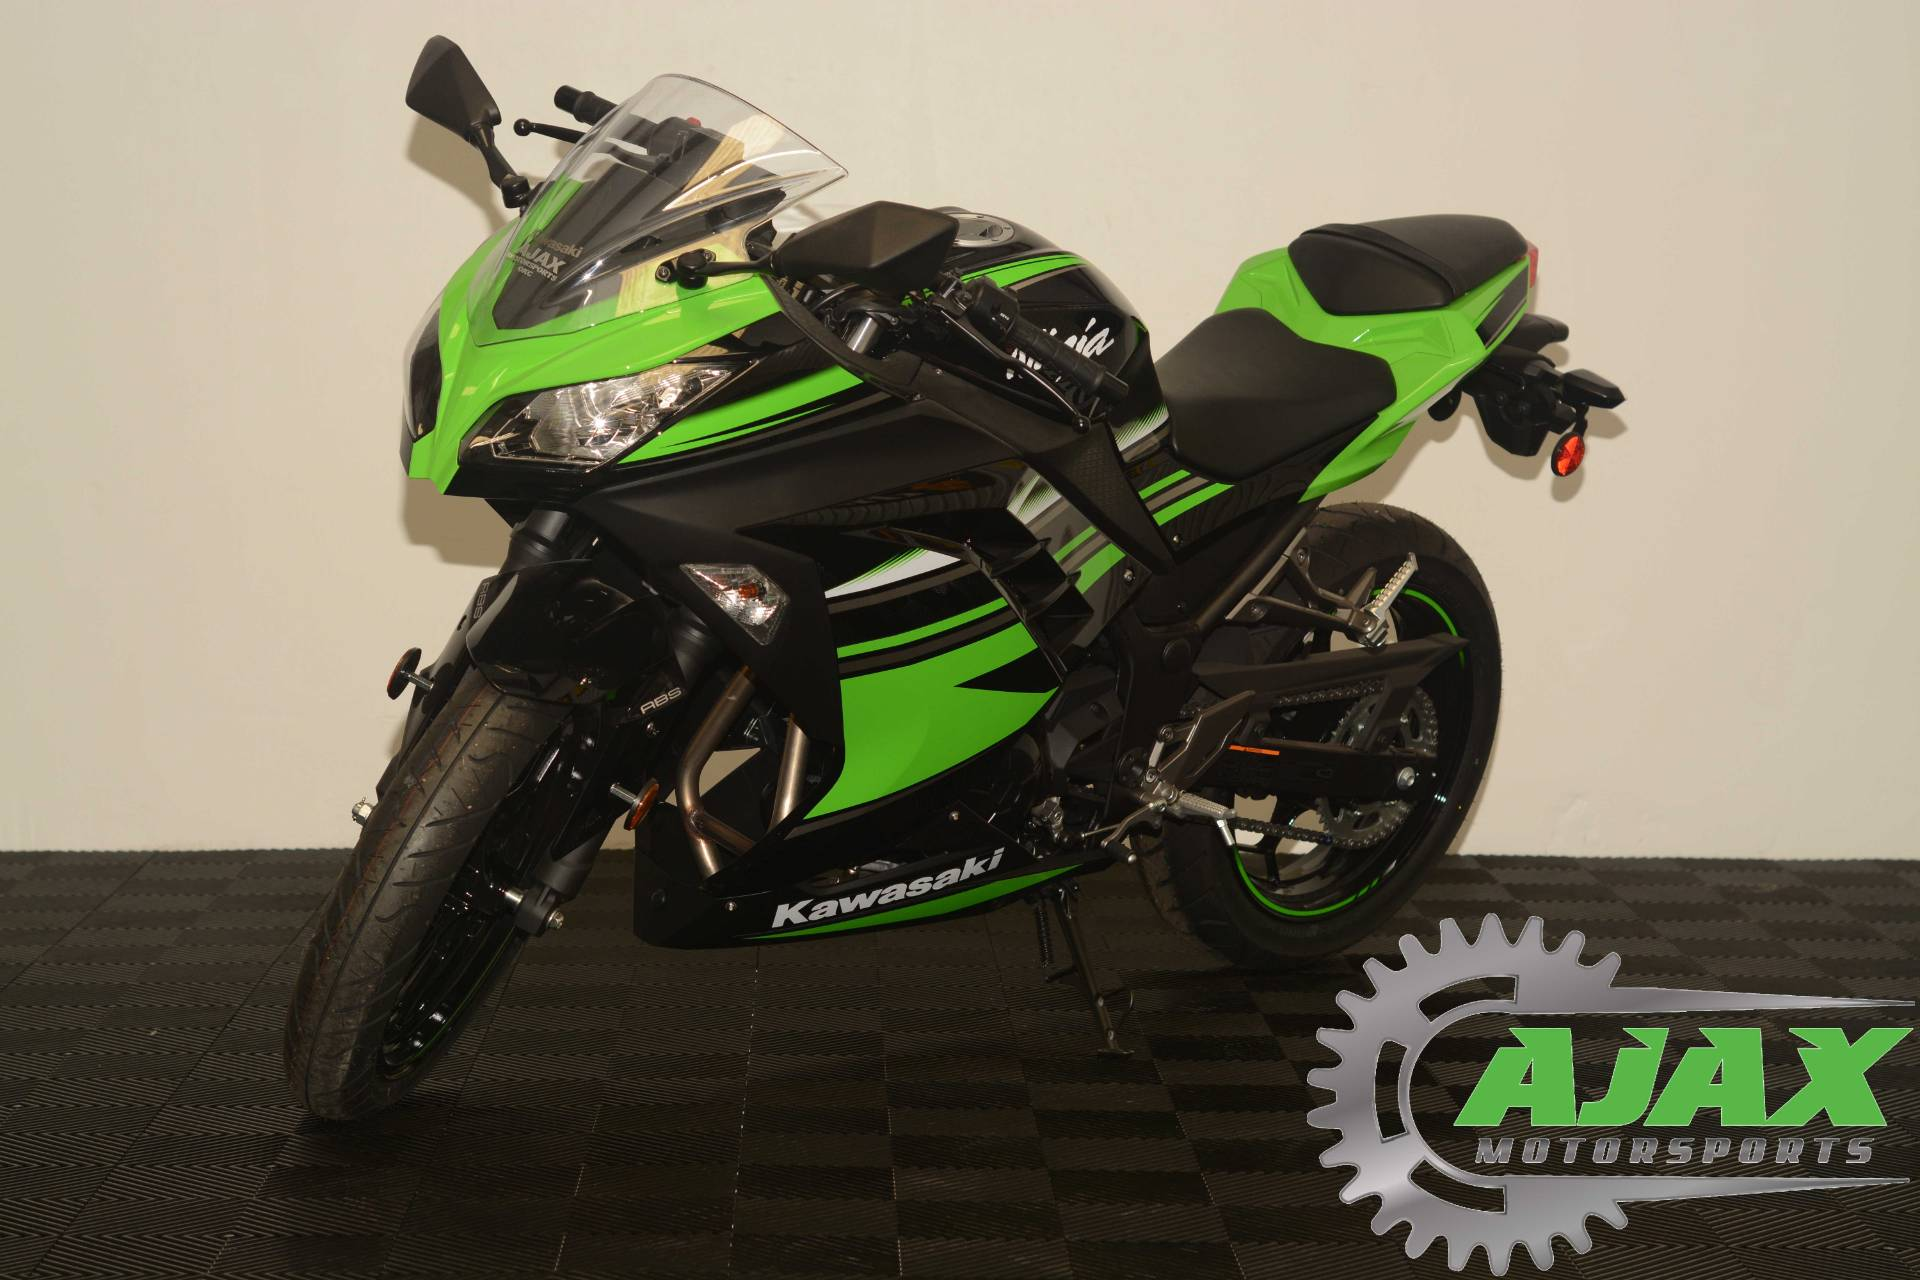 2016 Kawasaki Ninja 300 ABS KRT Edition in Oklahoma City, Oklahoma